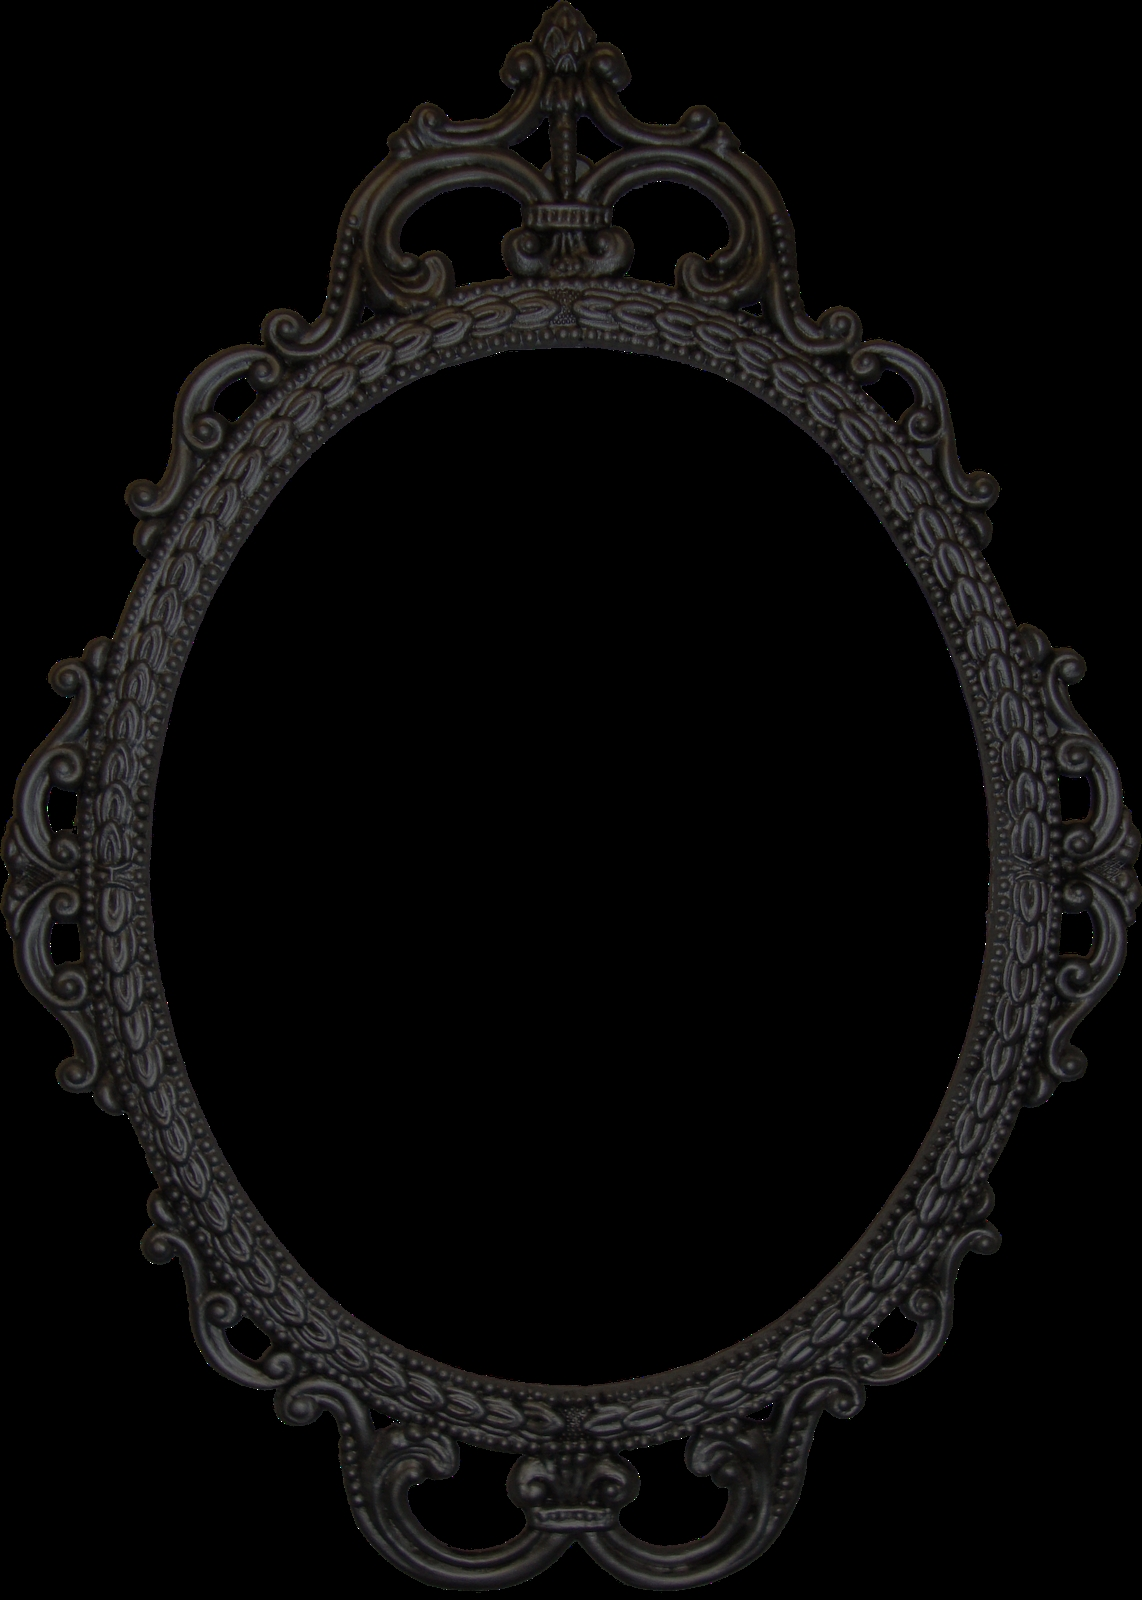 Doodle Craft Free Digital Antique Photo Frames Pictures For Oval Black Mirror (Image 7 of 15)